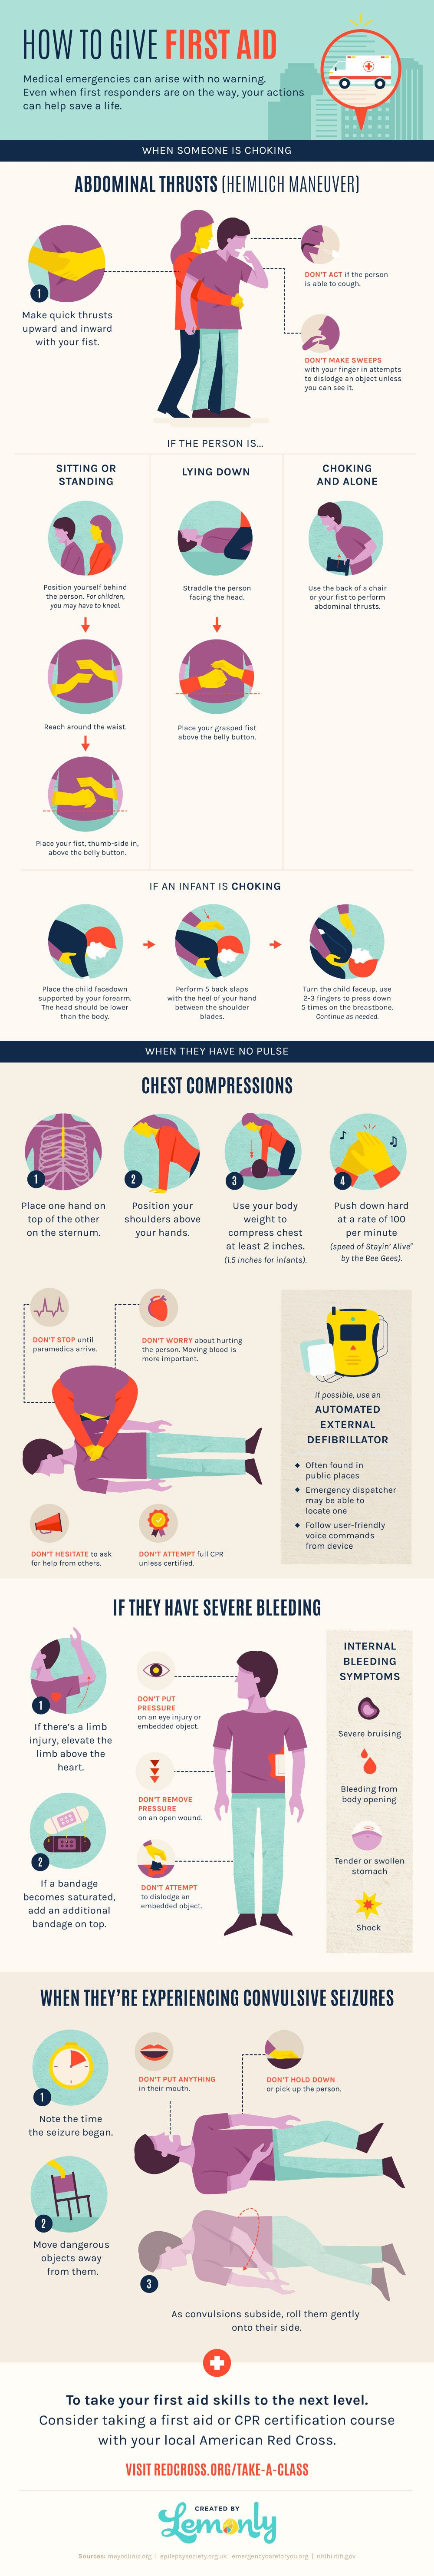 How to Give First Aid Infographic   Infographic First aid ...